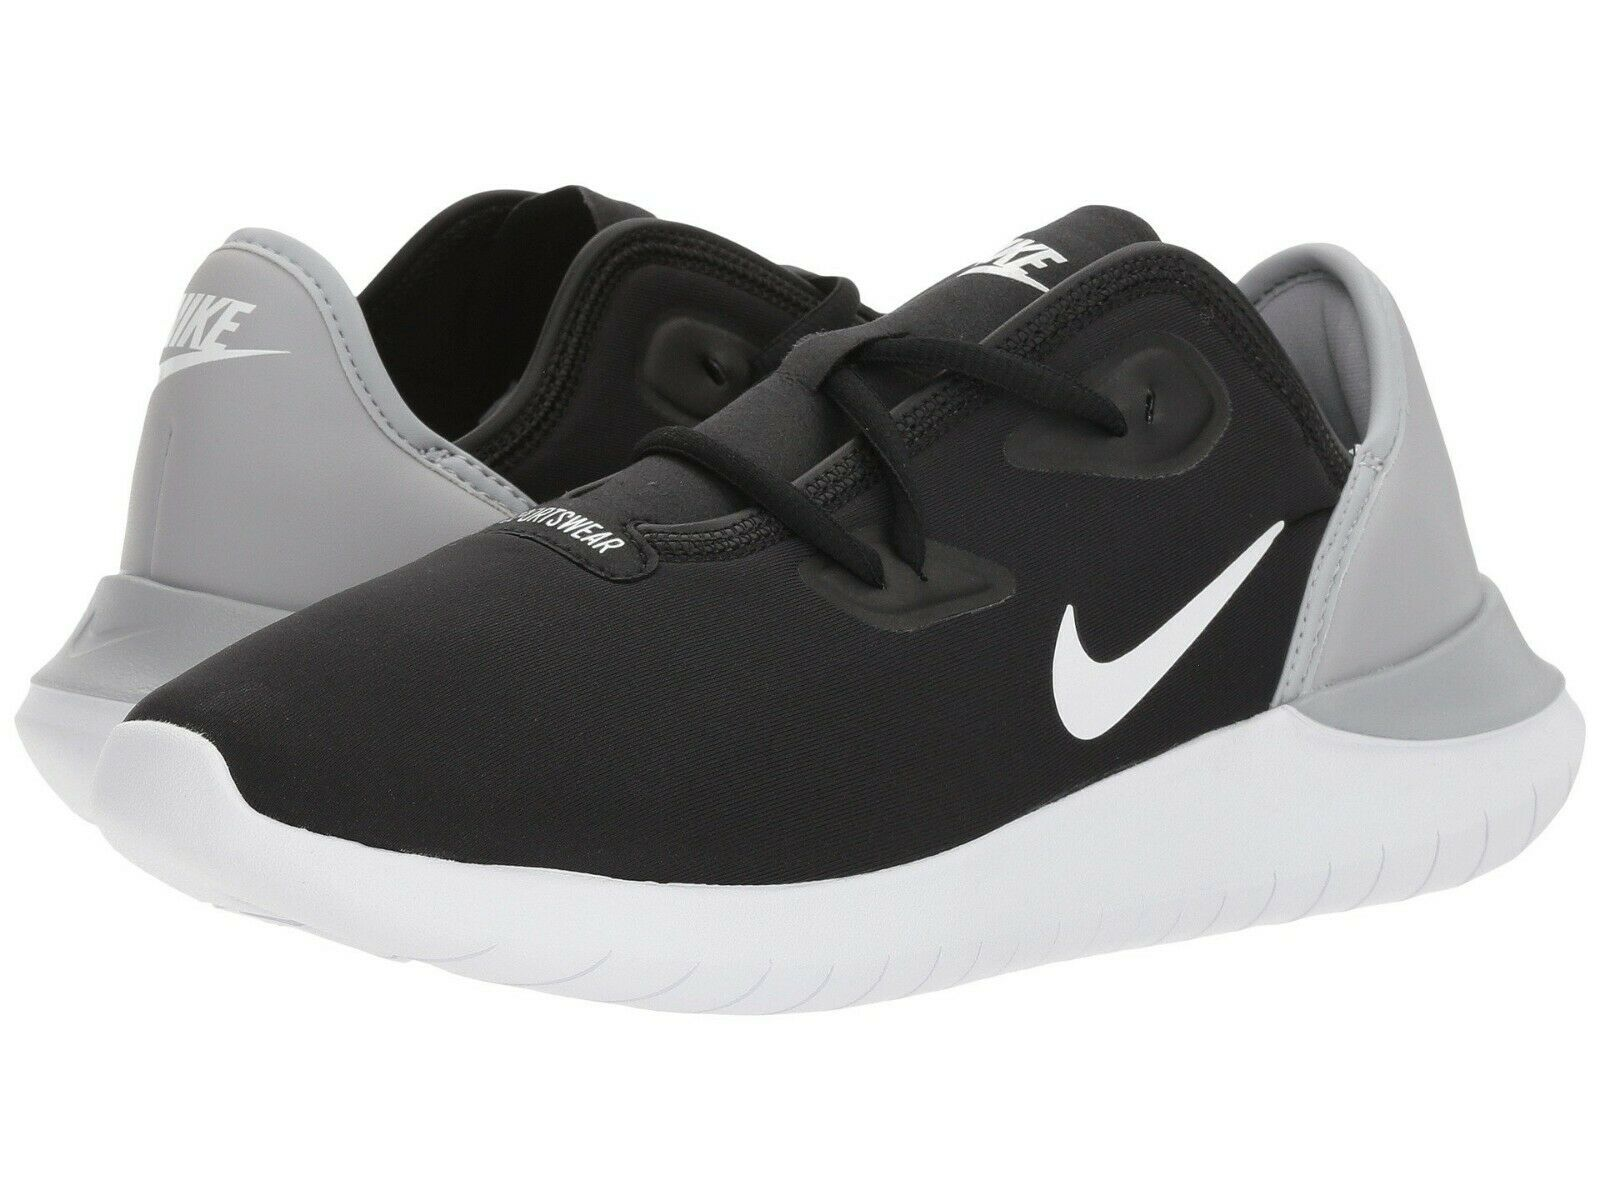 NIB Nike Men's Hakata Running shoes